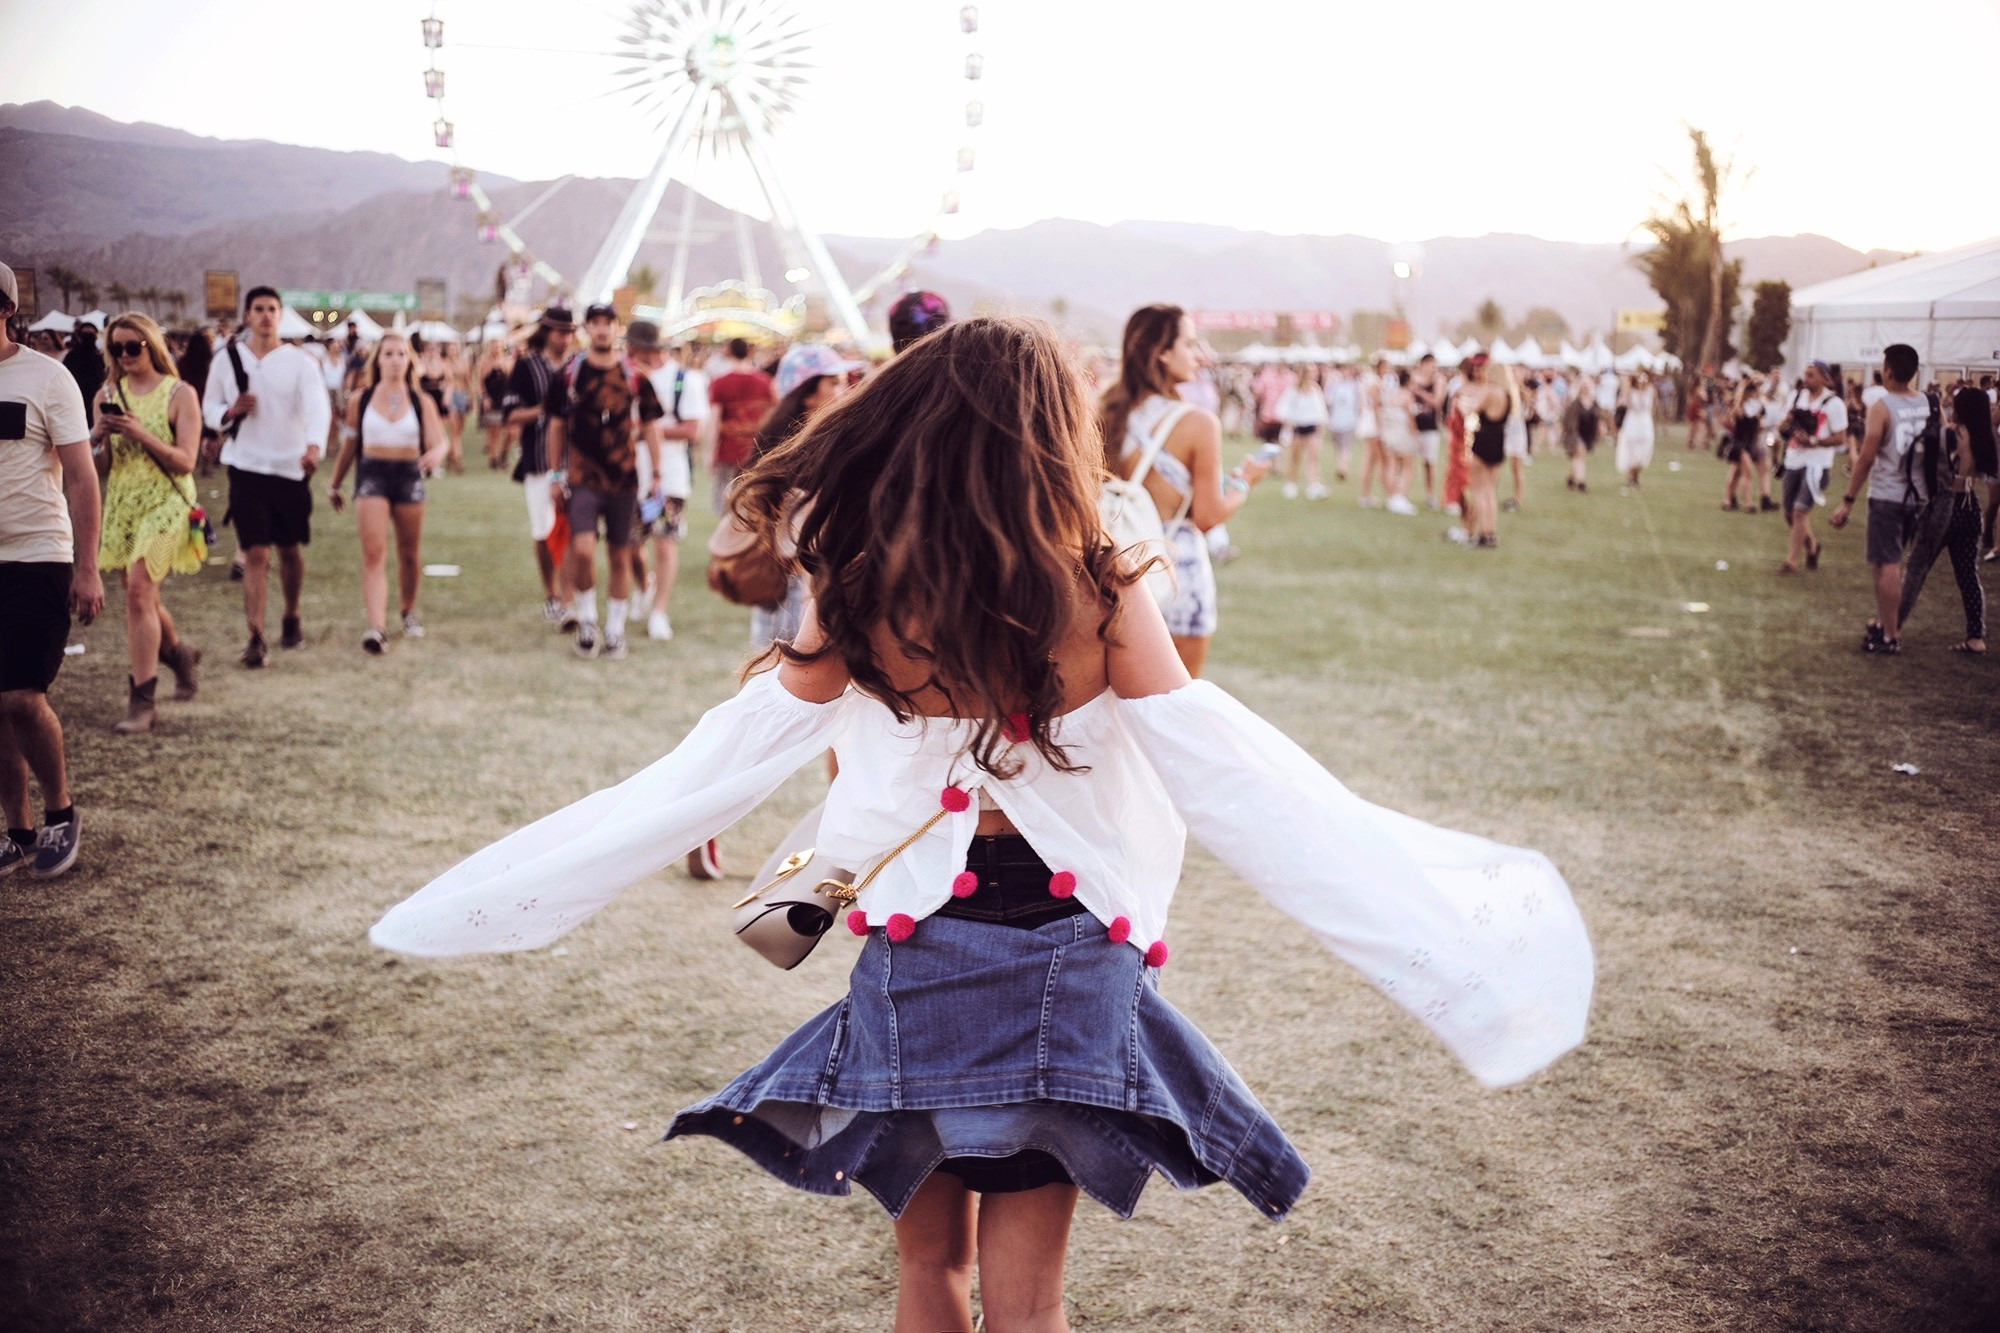 Join the Coachella madness!